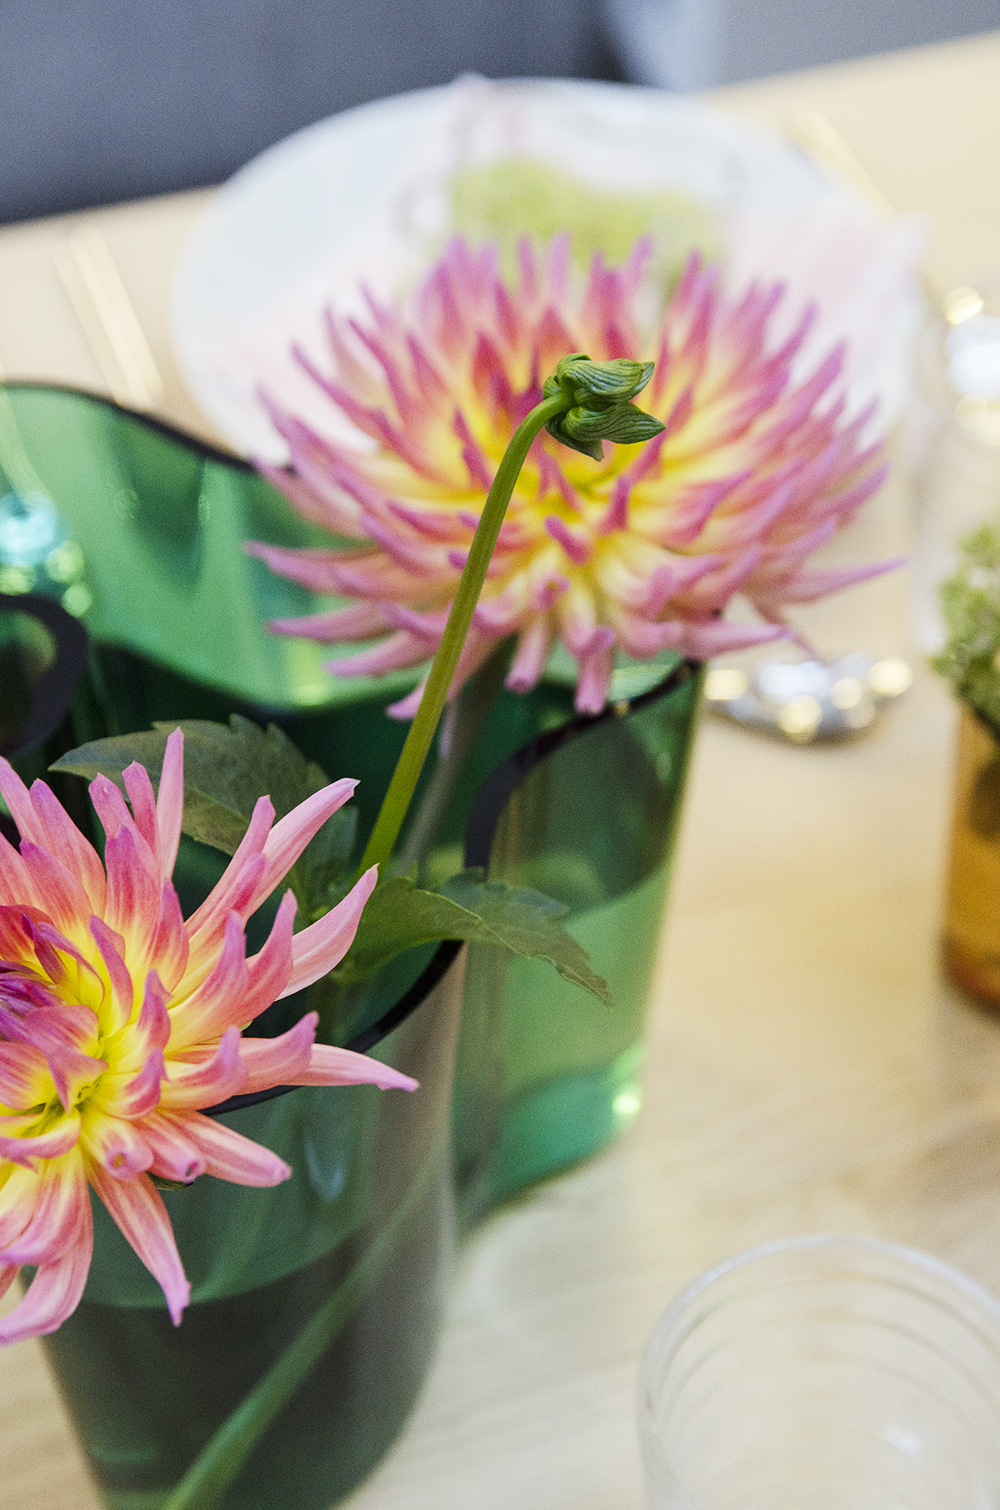 5 tips for keeping your flowers fresh